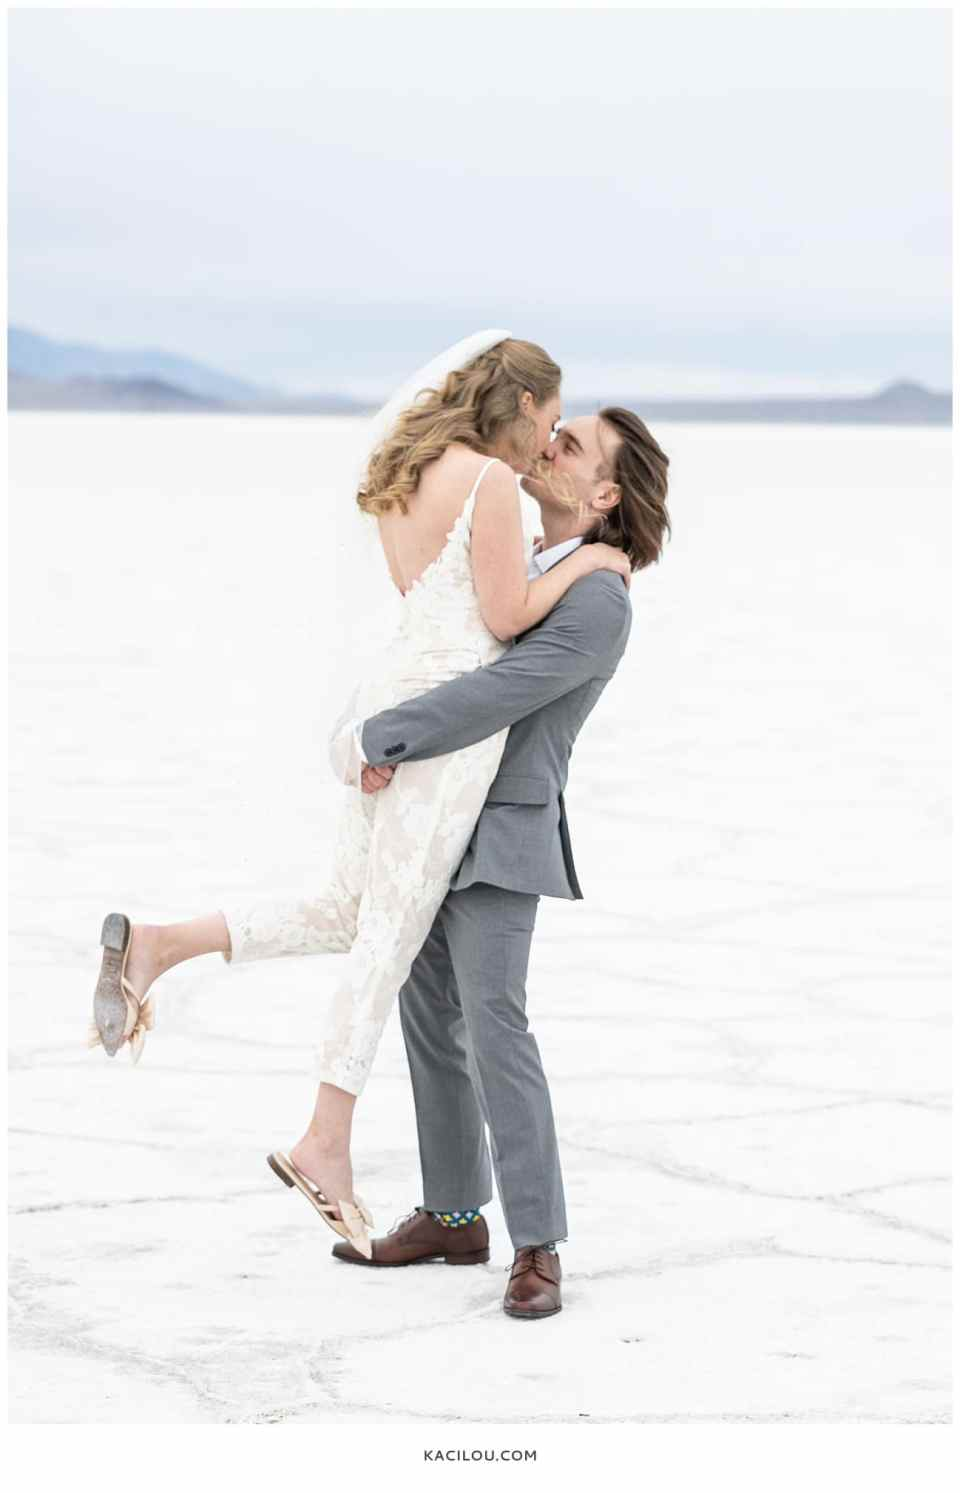 utah elopement photographer kaci lou photography bonneville salt flats sneak peek photos for kylie and max-20.jpg